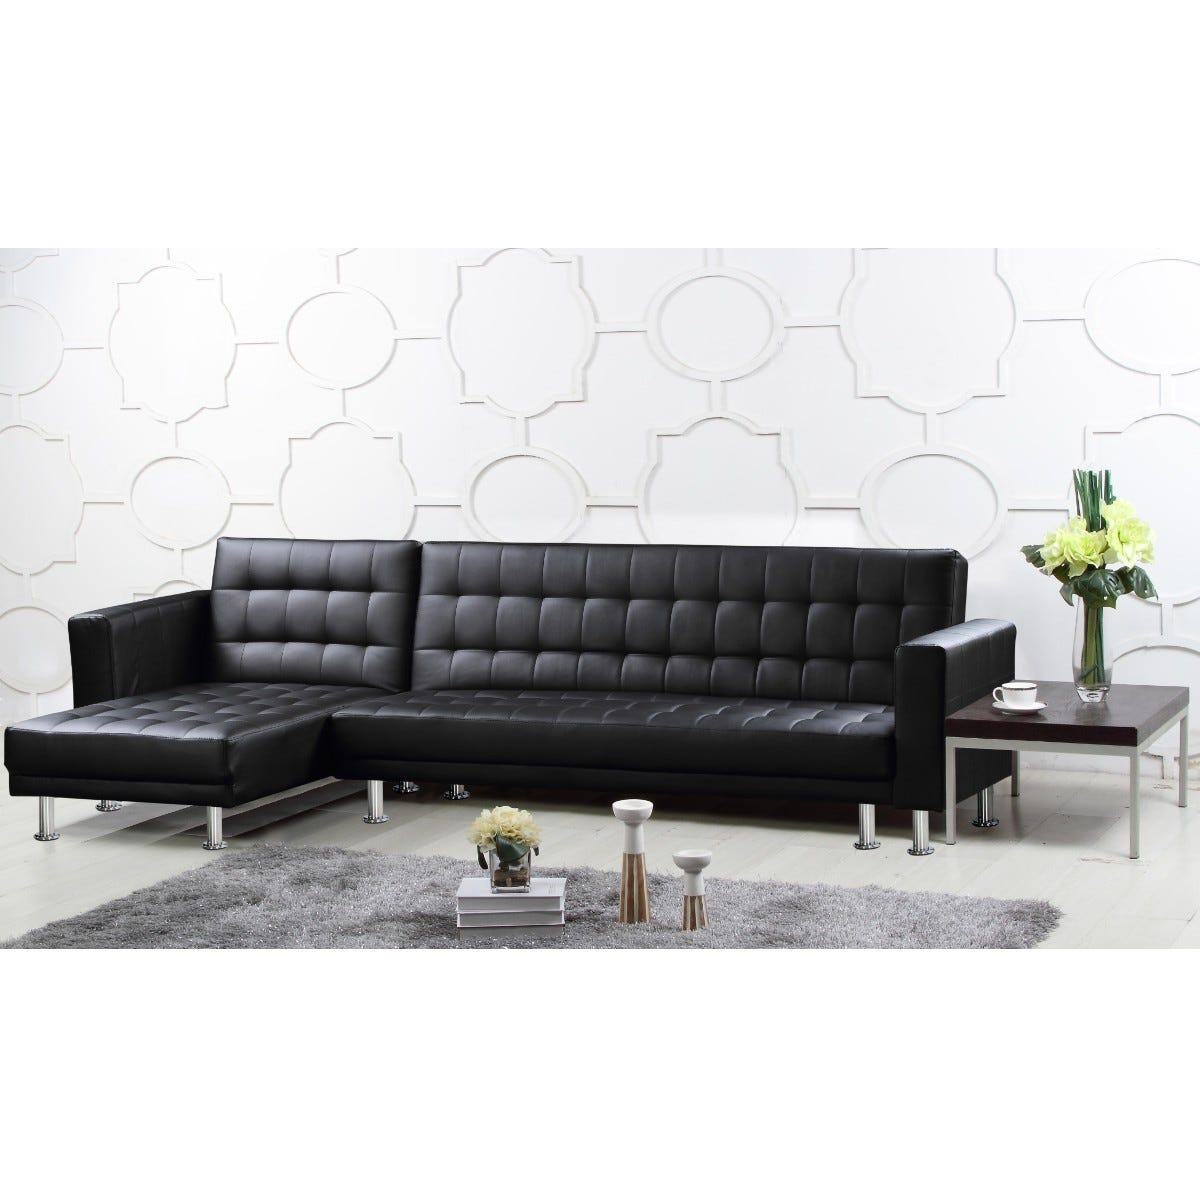 Haxby Corner Chaise Sofa Bed Faux Leather Black